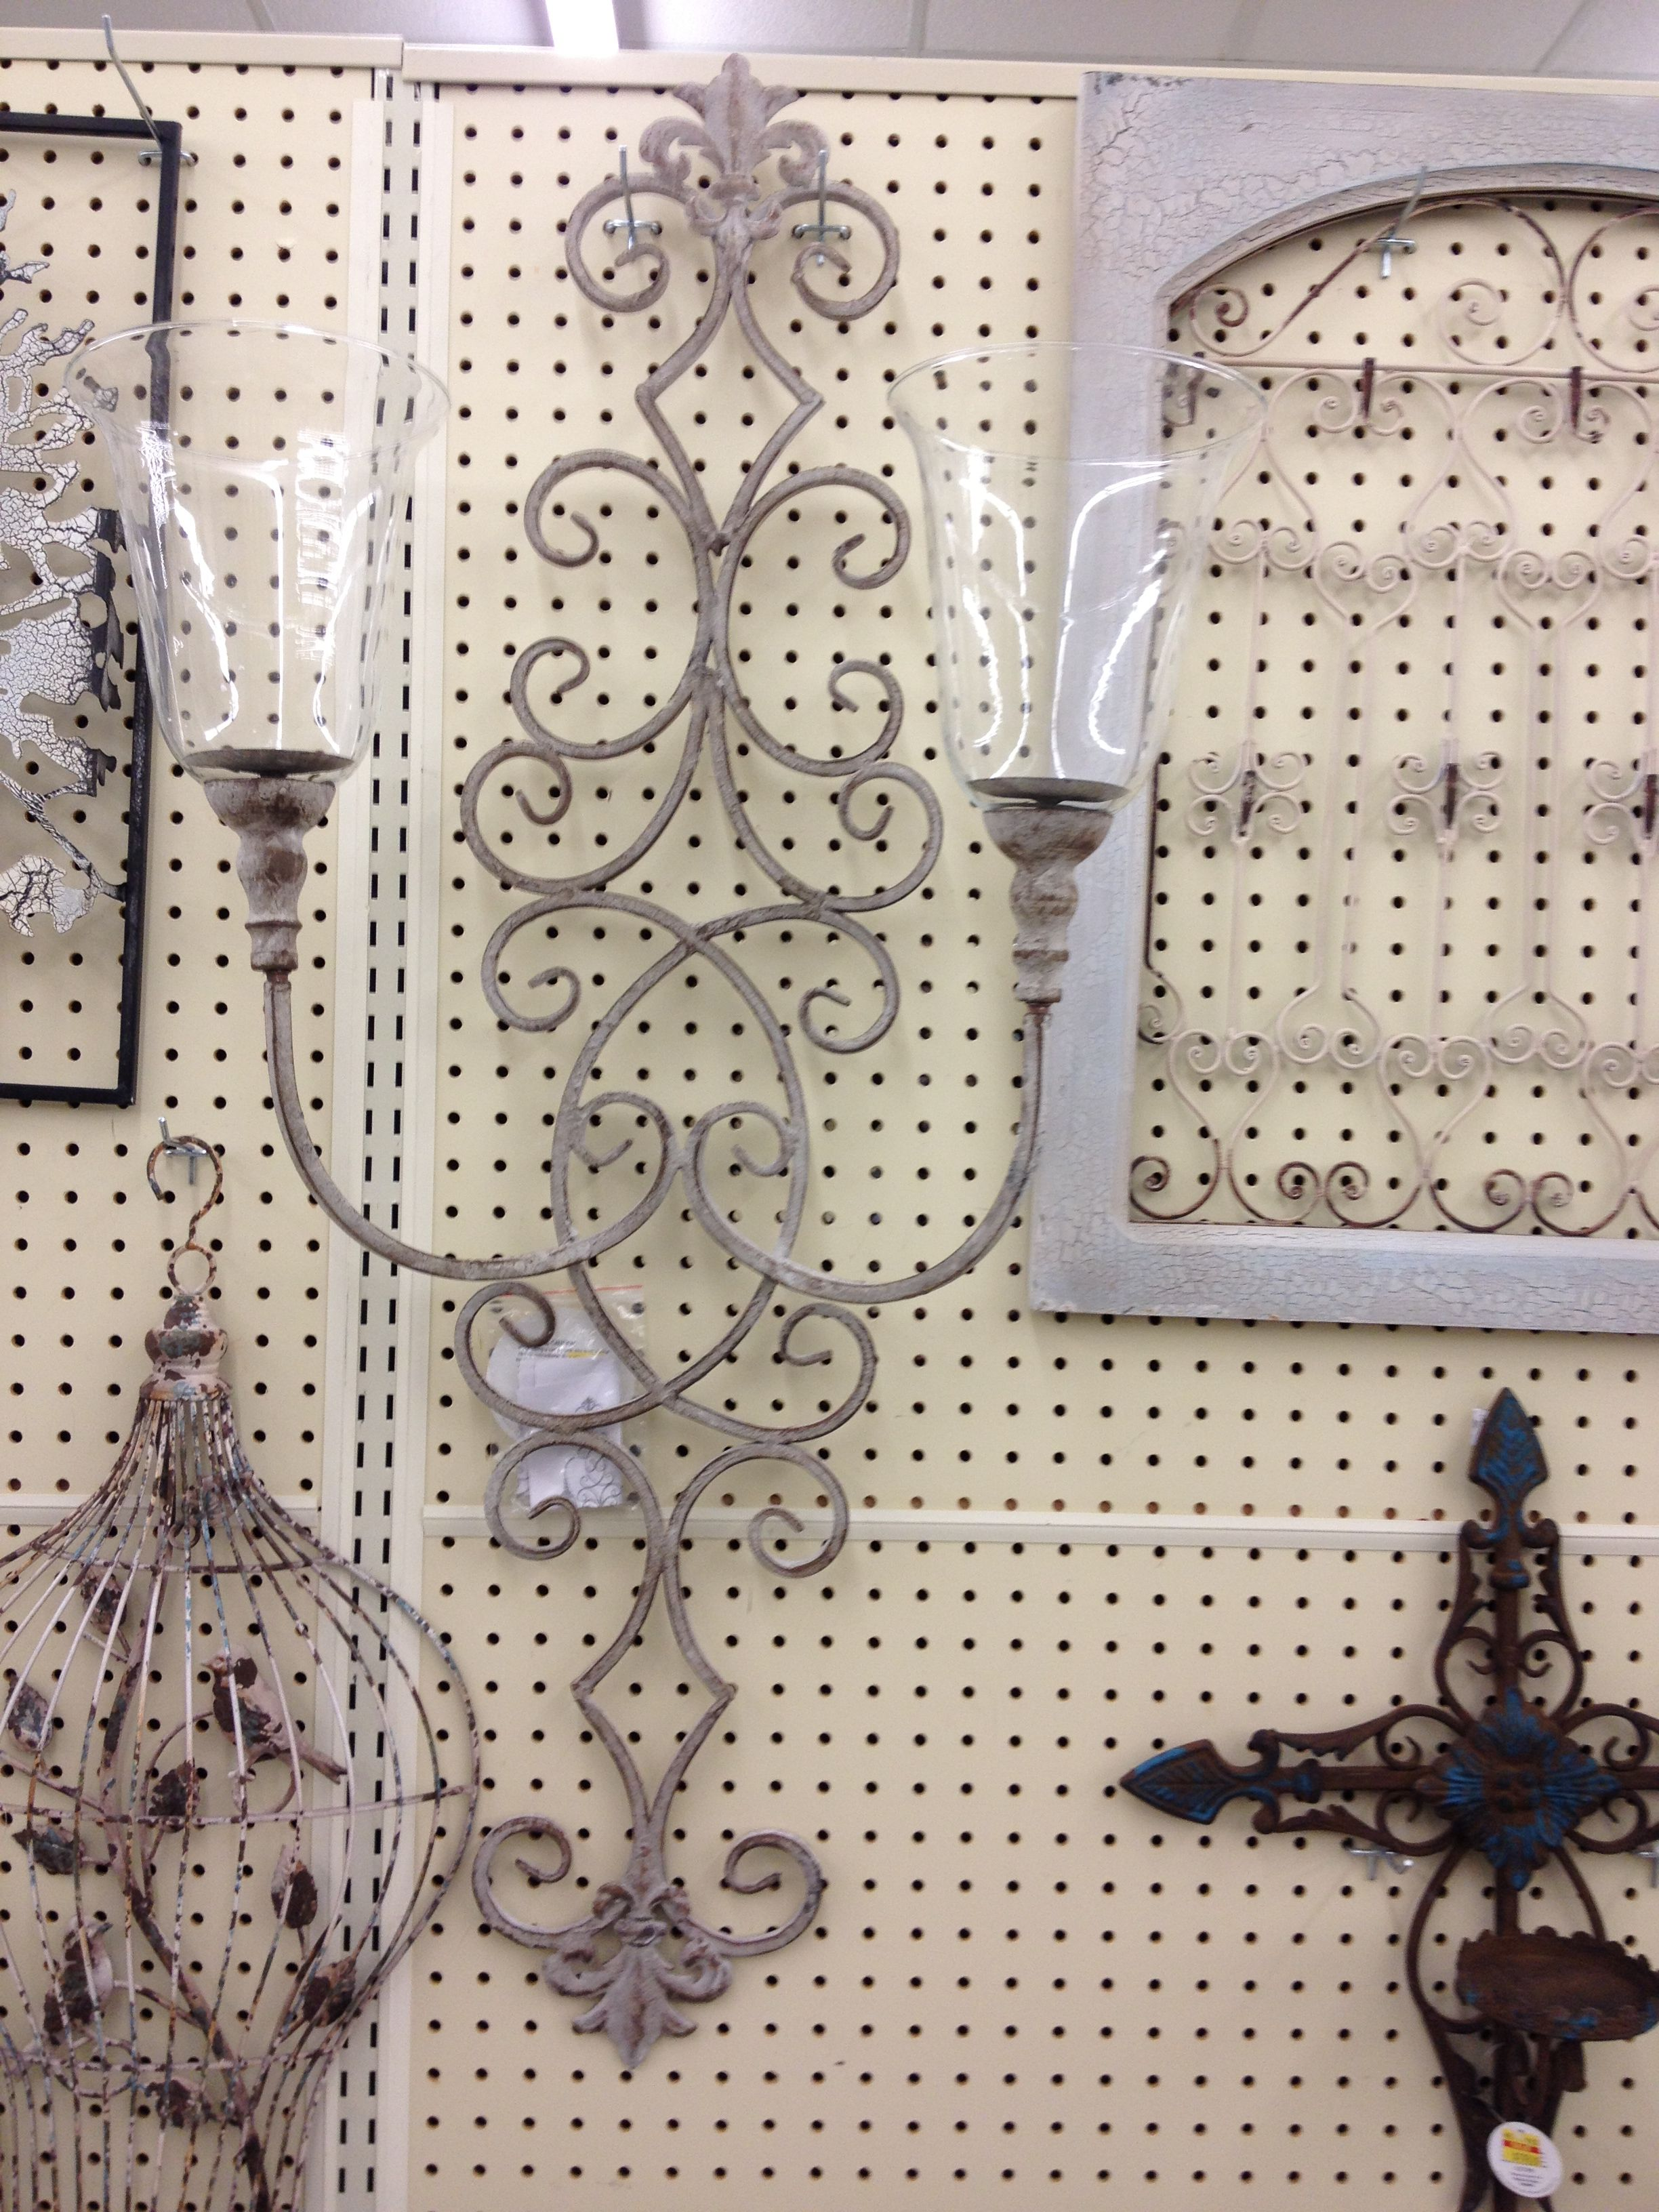 Pair of wall candle holder sconces $43 each clearance ... on Hobby Lobby Wall Candle Sconces Wall Candle Holders id=20523